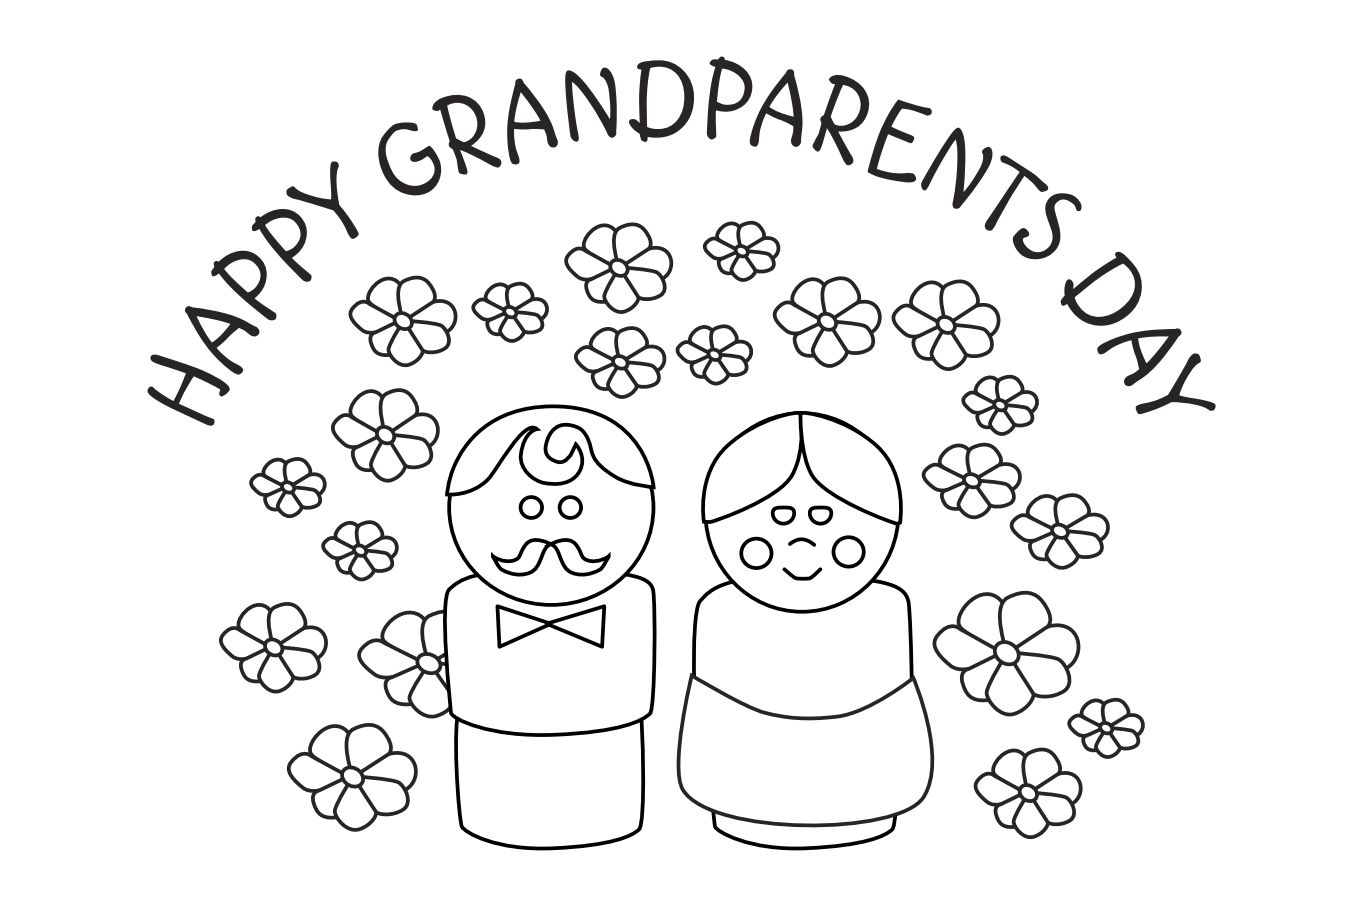 Free coloring pages grandparents day - Free Coloring Pages Grandparents Day 35